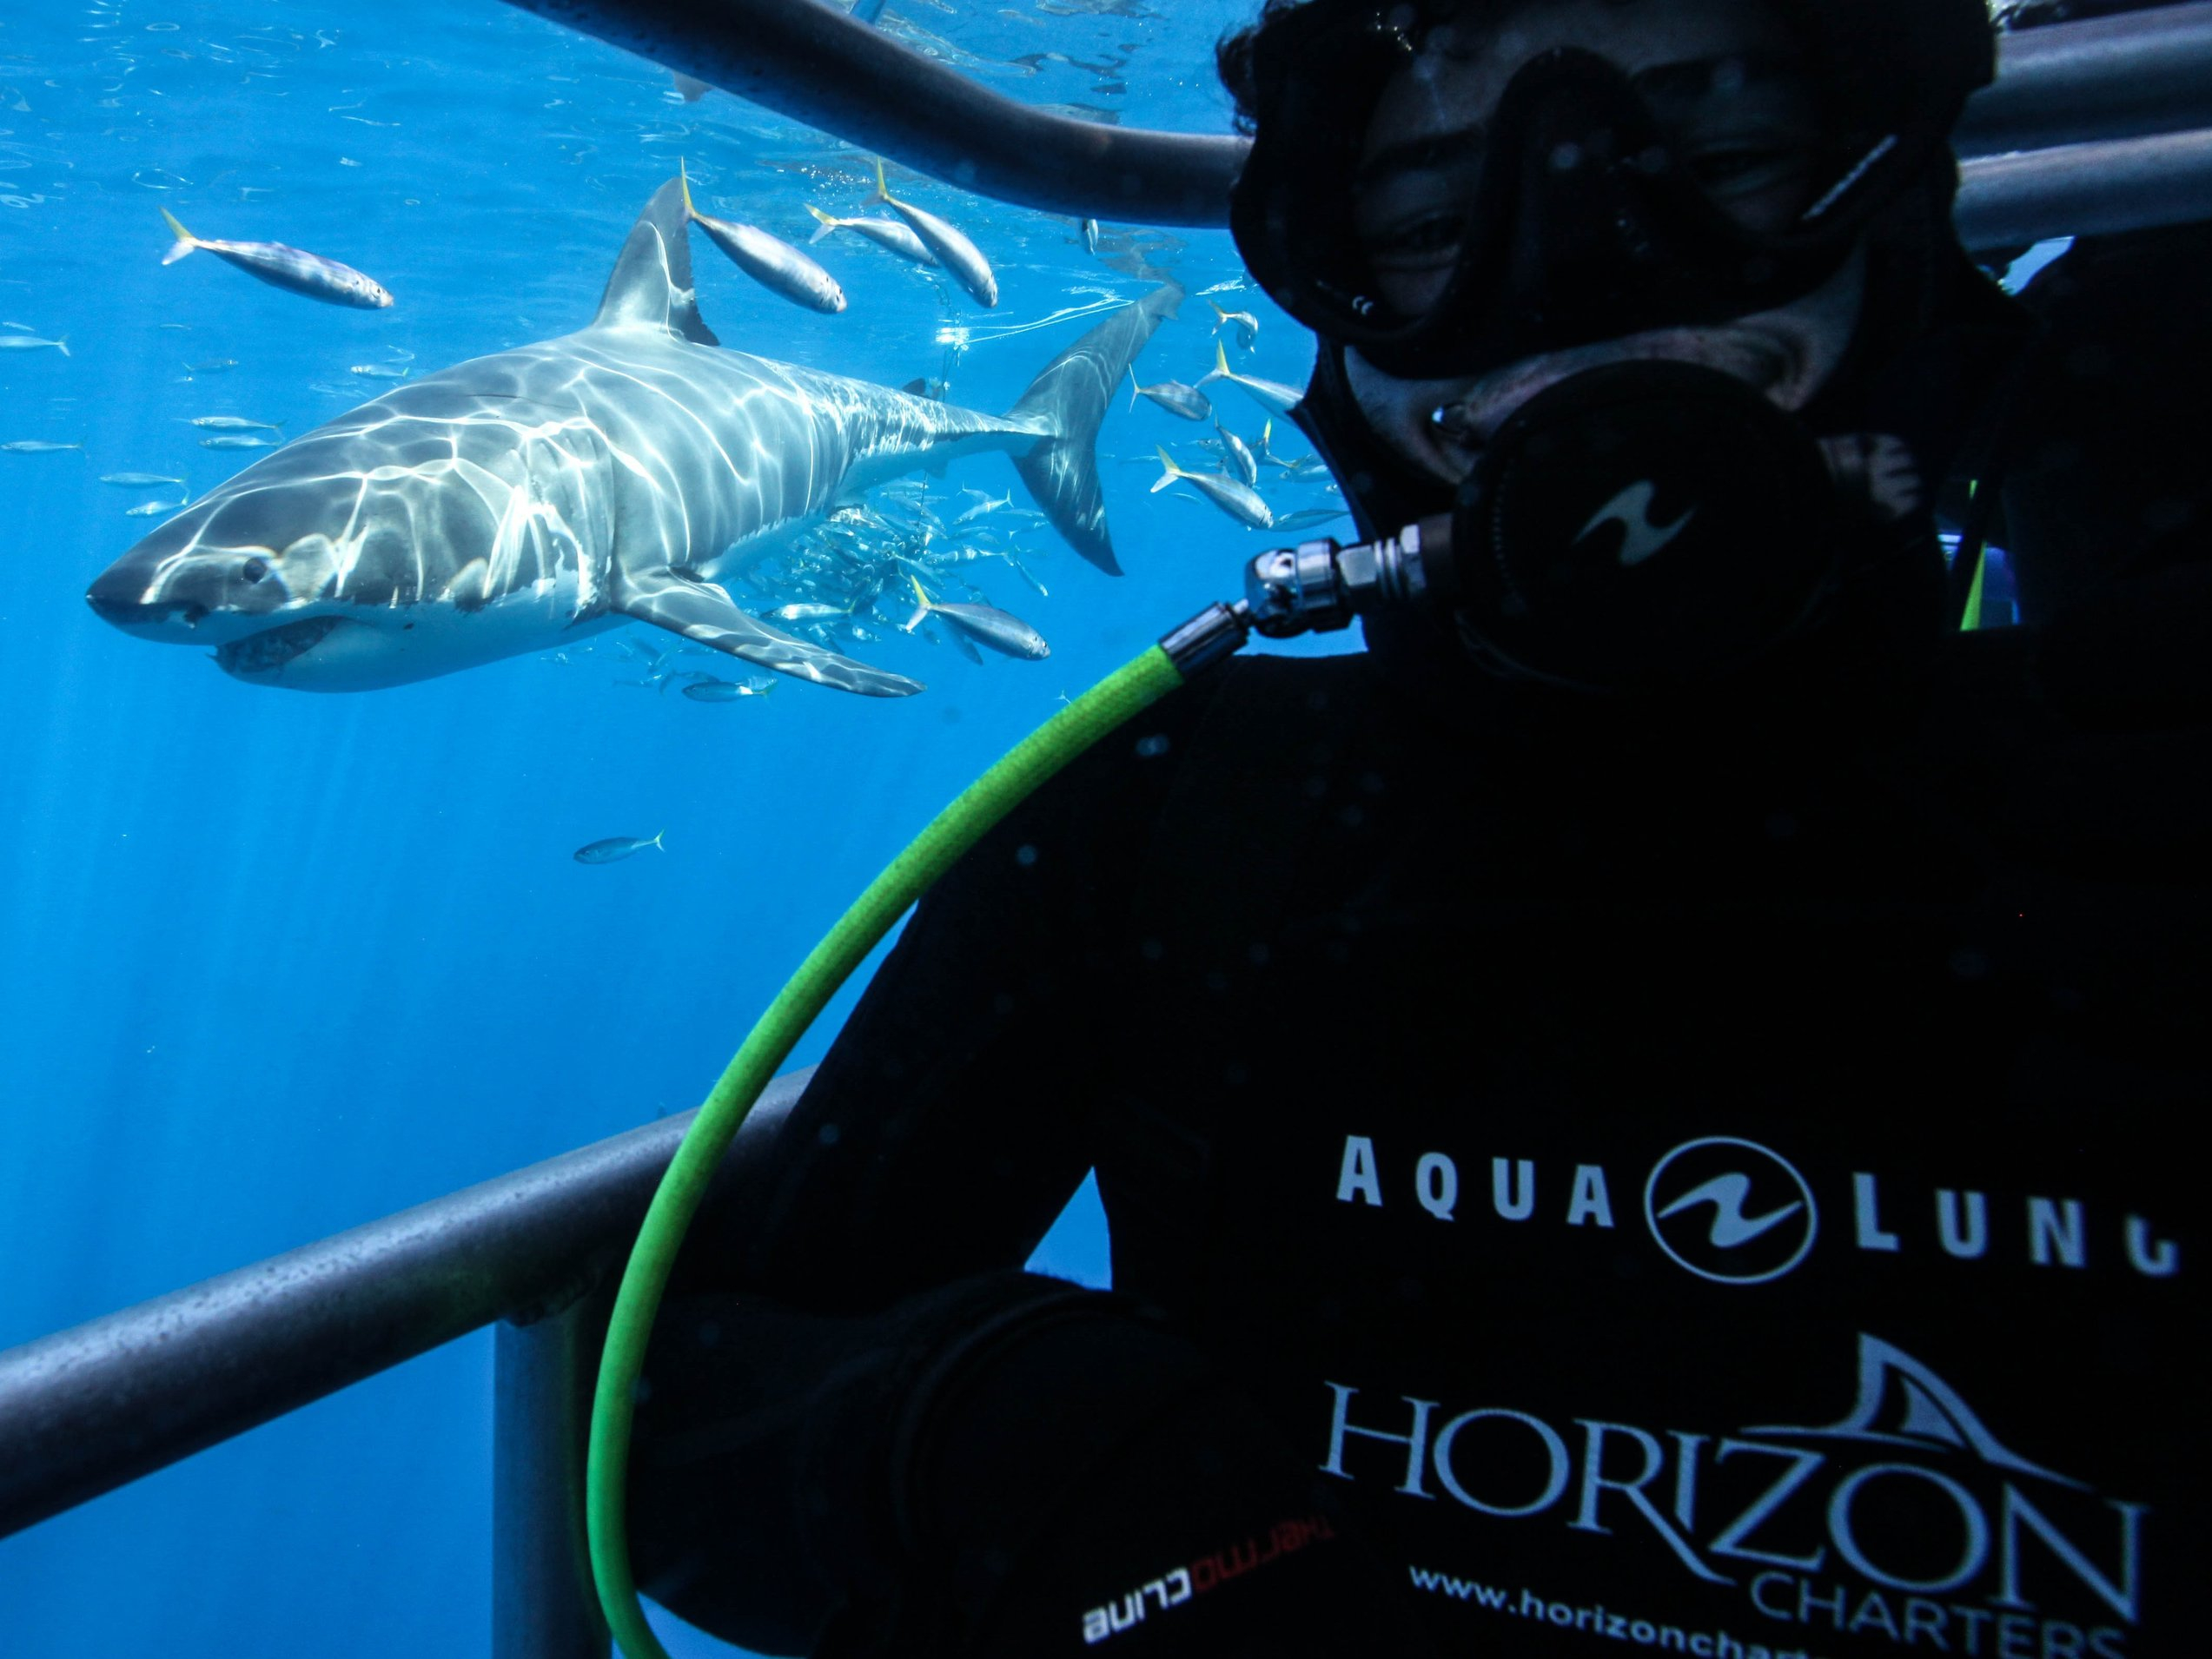 Horizon Charters Guadalupe Liveaboard